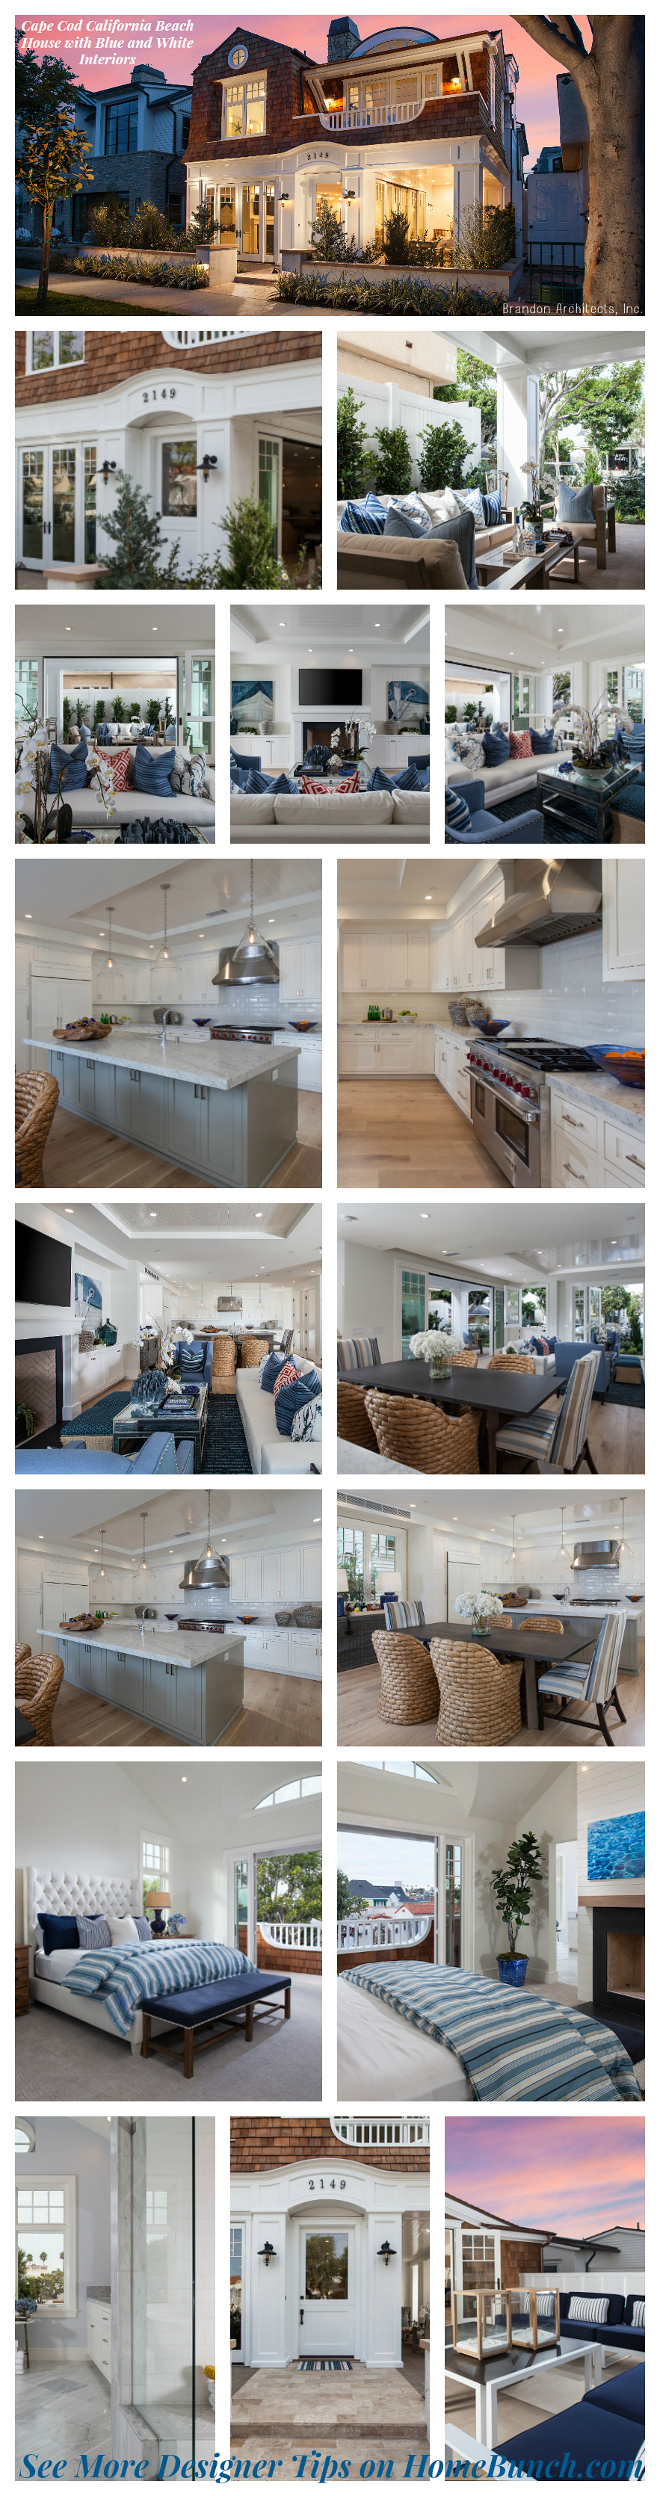 Cape Cod California Beach House with Blue and White Interiors. Cape Cod California Beach House with Blue and White Interior ideas #CapeCod #California #BeachHouse #BlueandWhiteInteriors